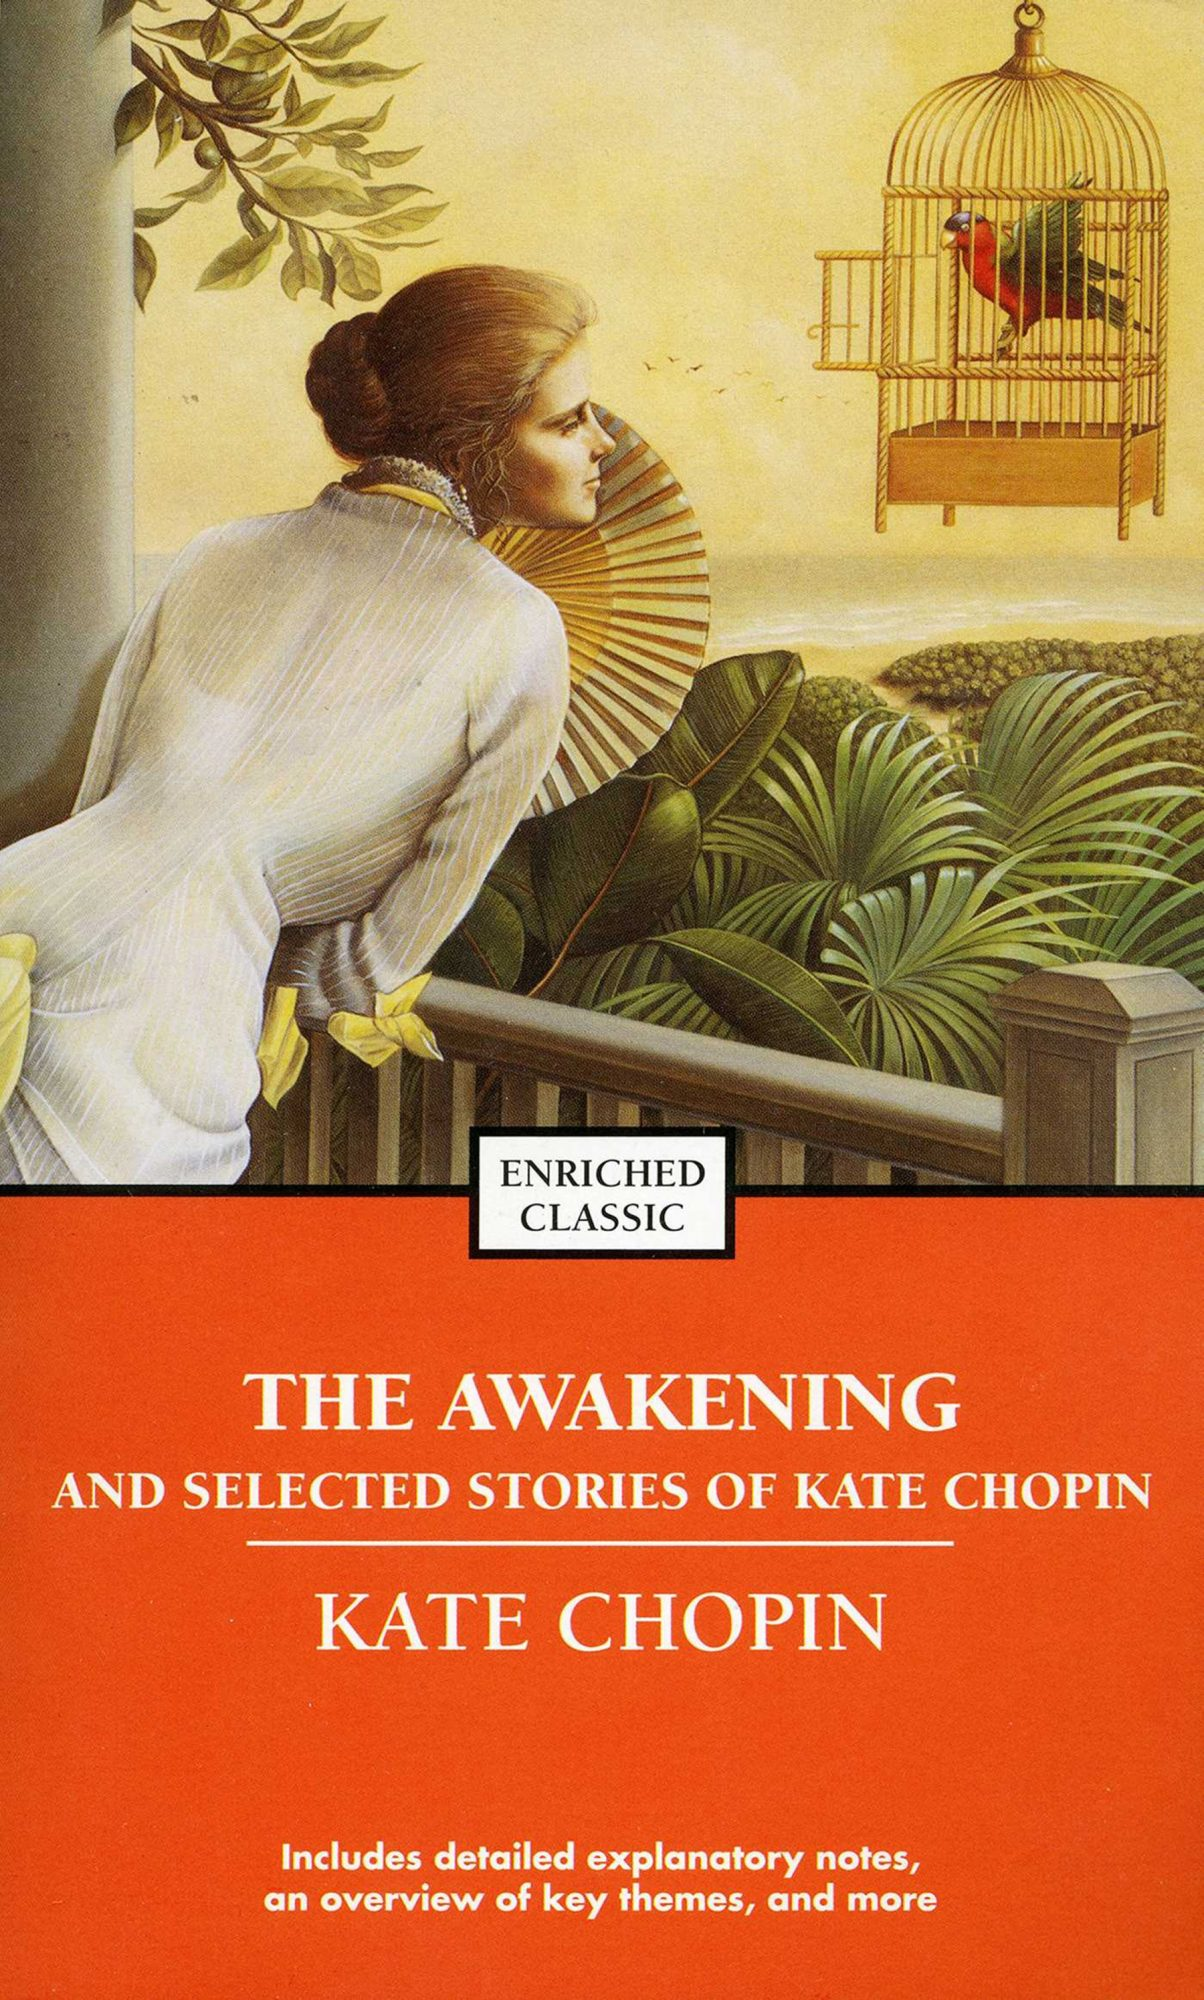 awakening-and-selected-stories-of-kate